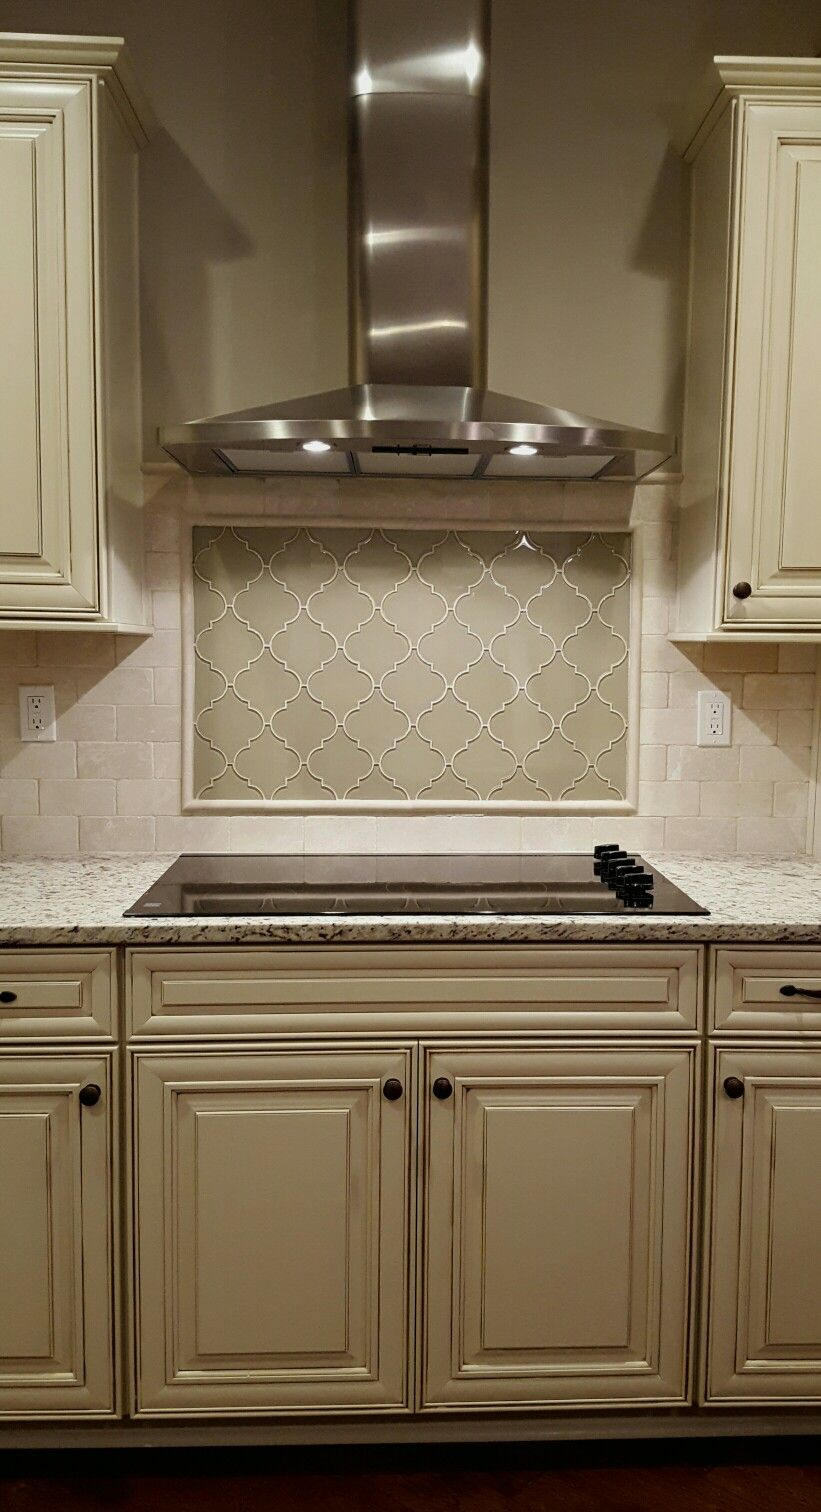 picture of kitchen backsplash picture frame arebesque tile backsplash under chimney oven hood 3 x 6 tumbled stone tile 3307